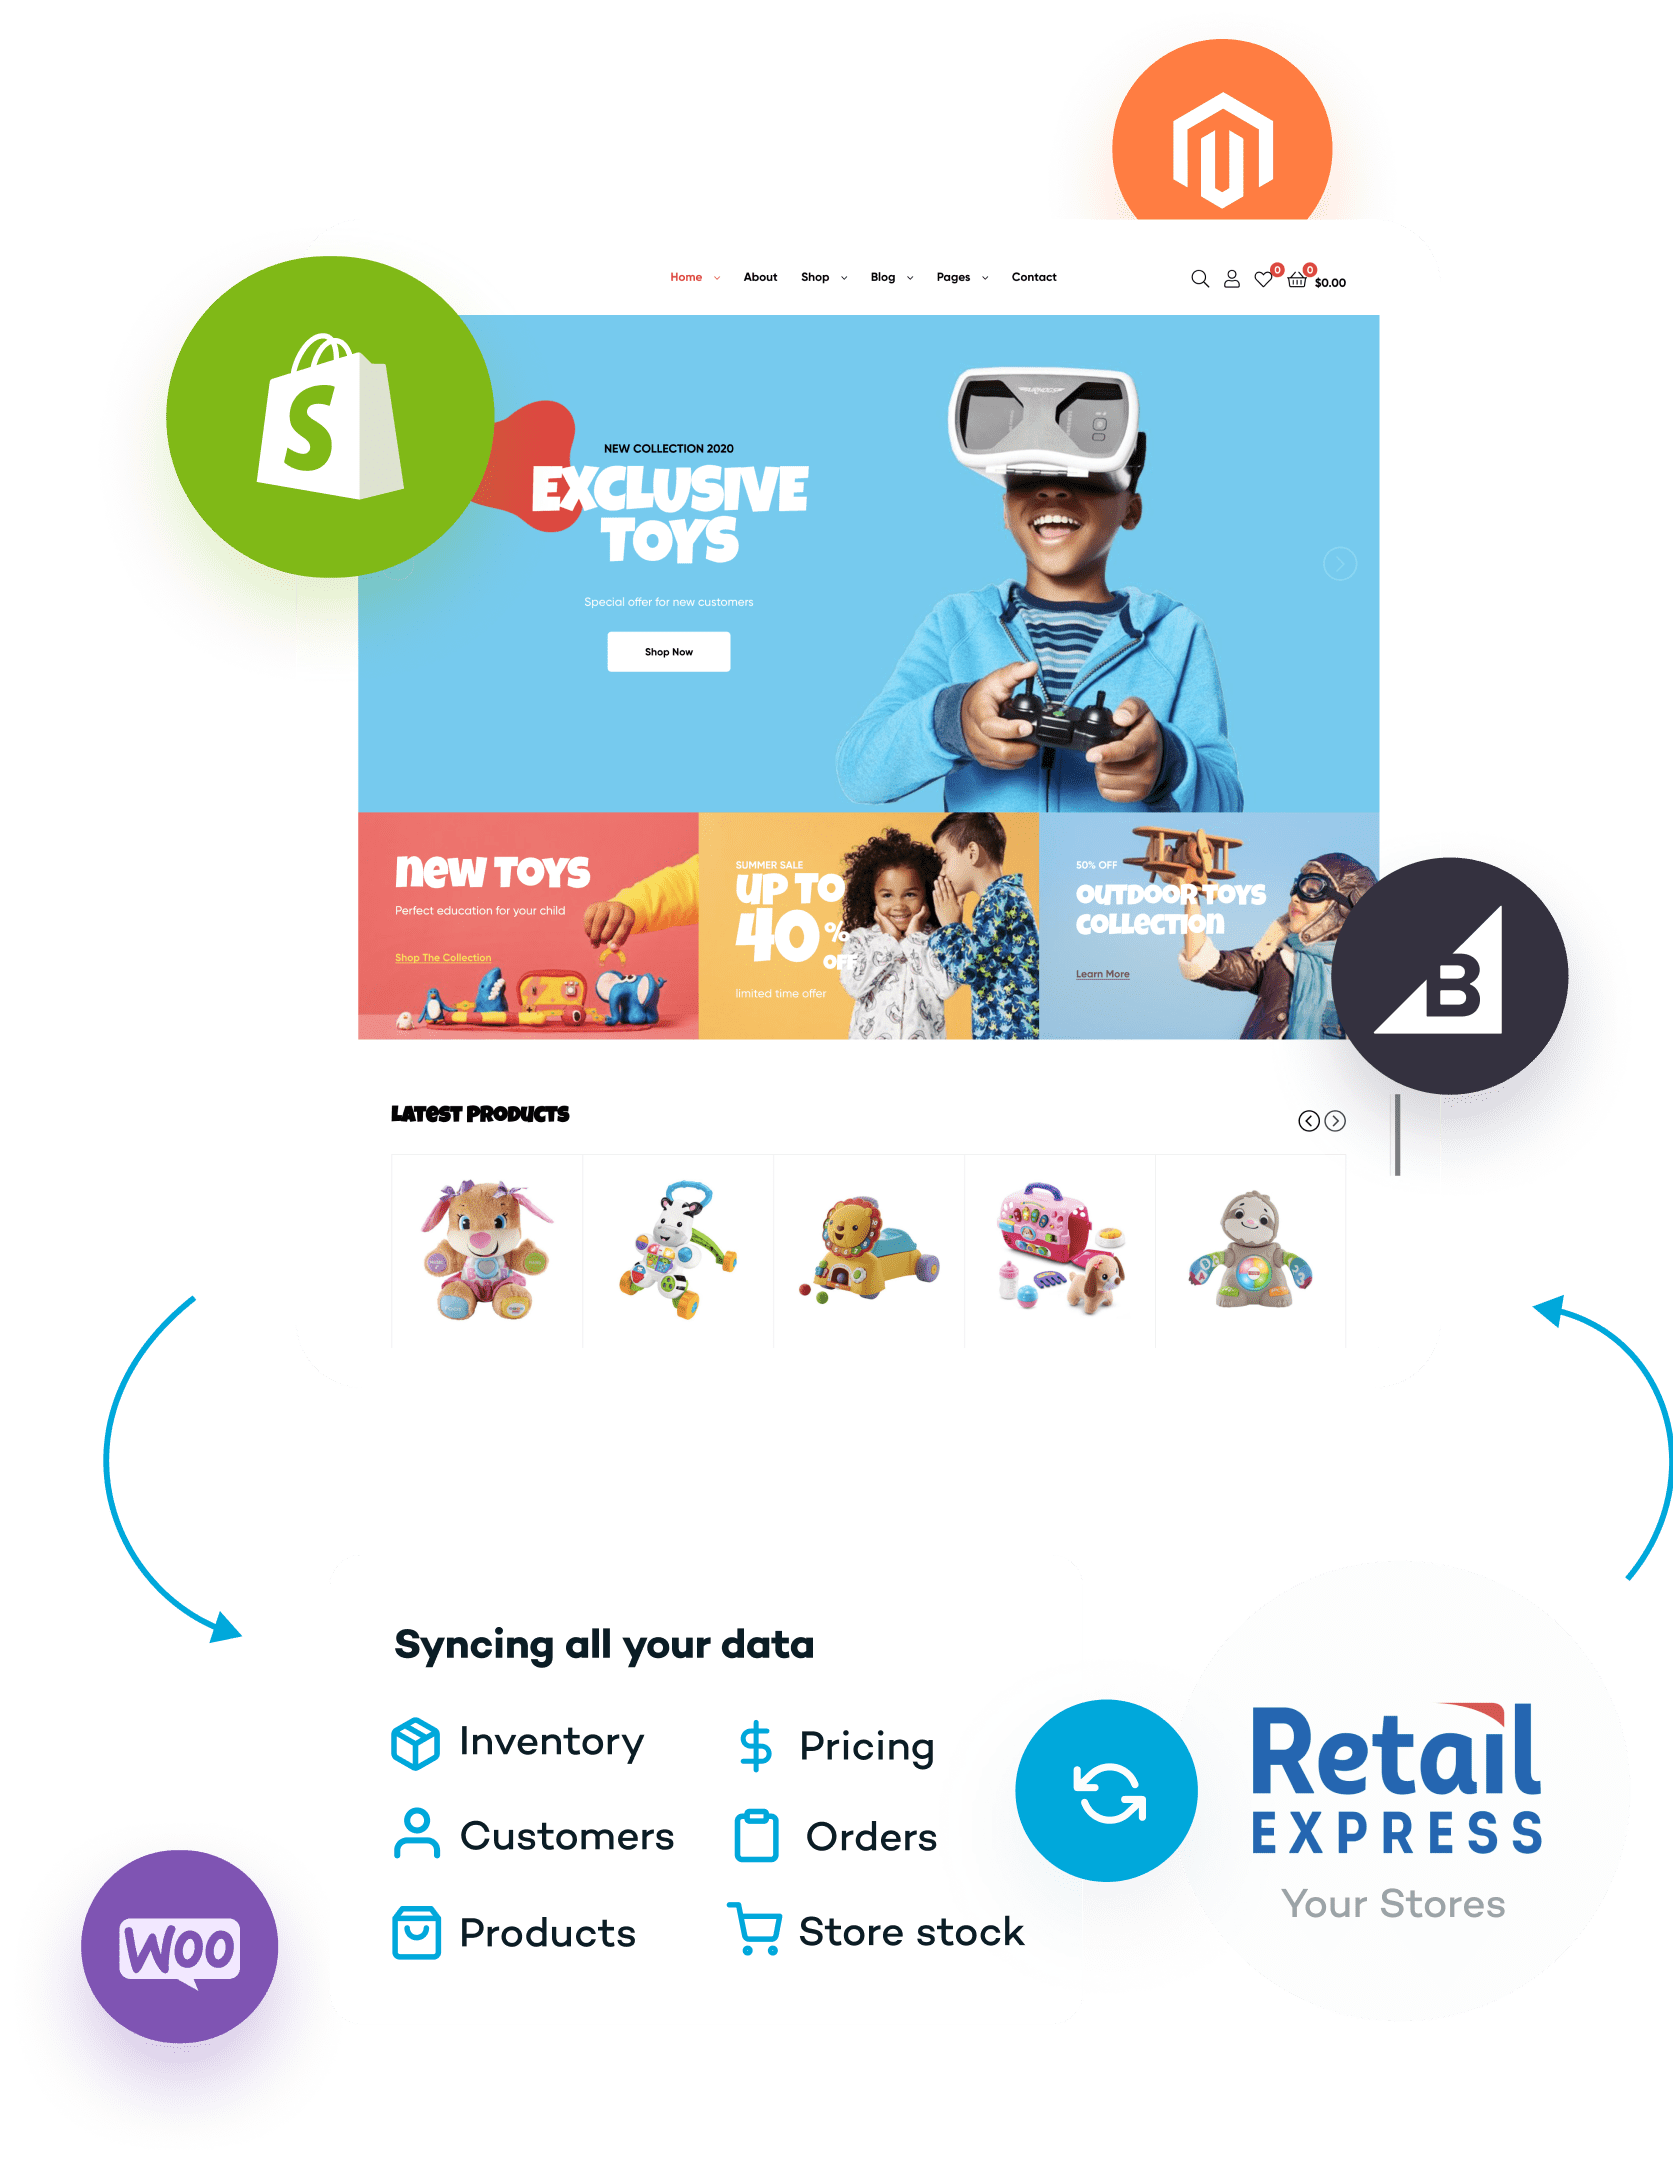 pos system for single-store toys retailer